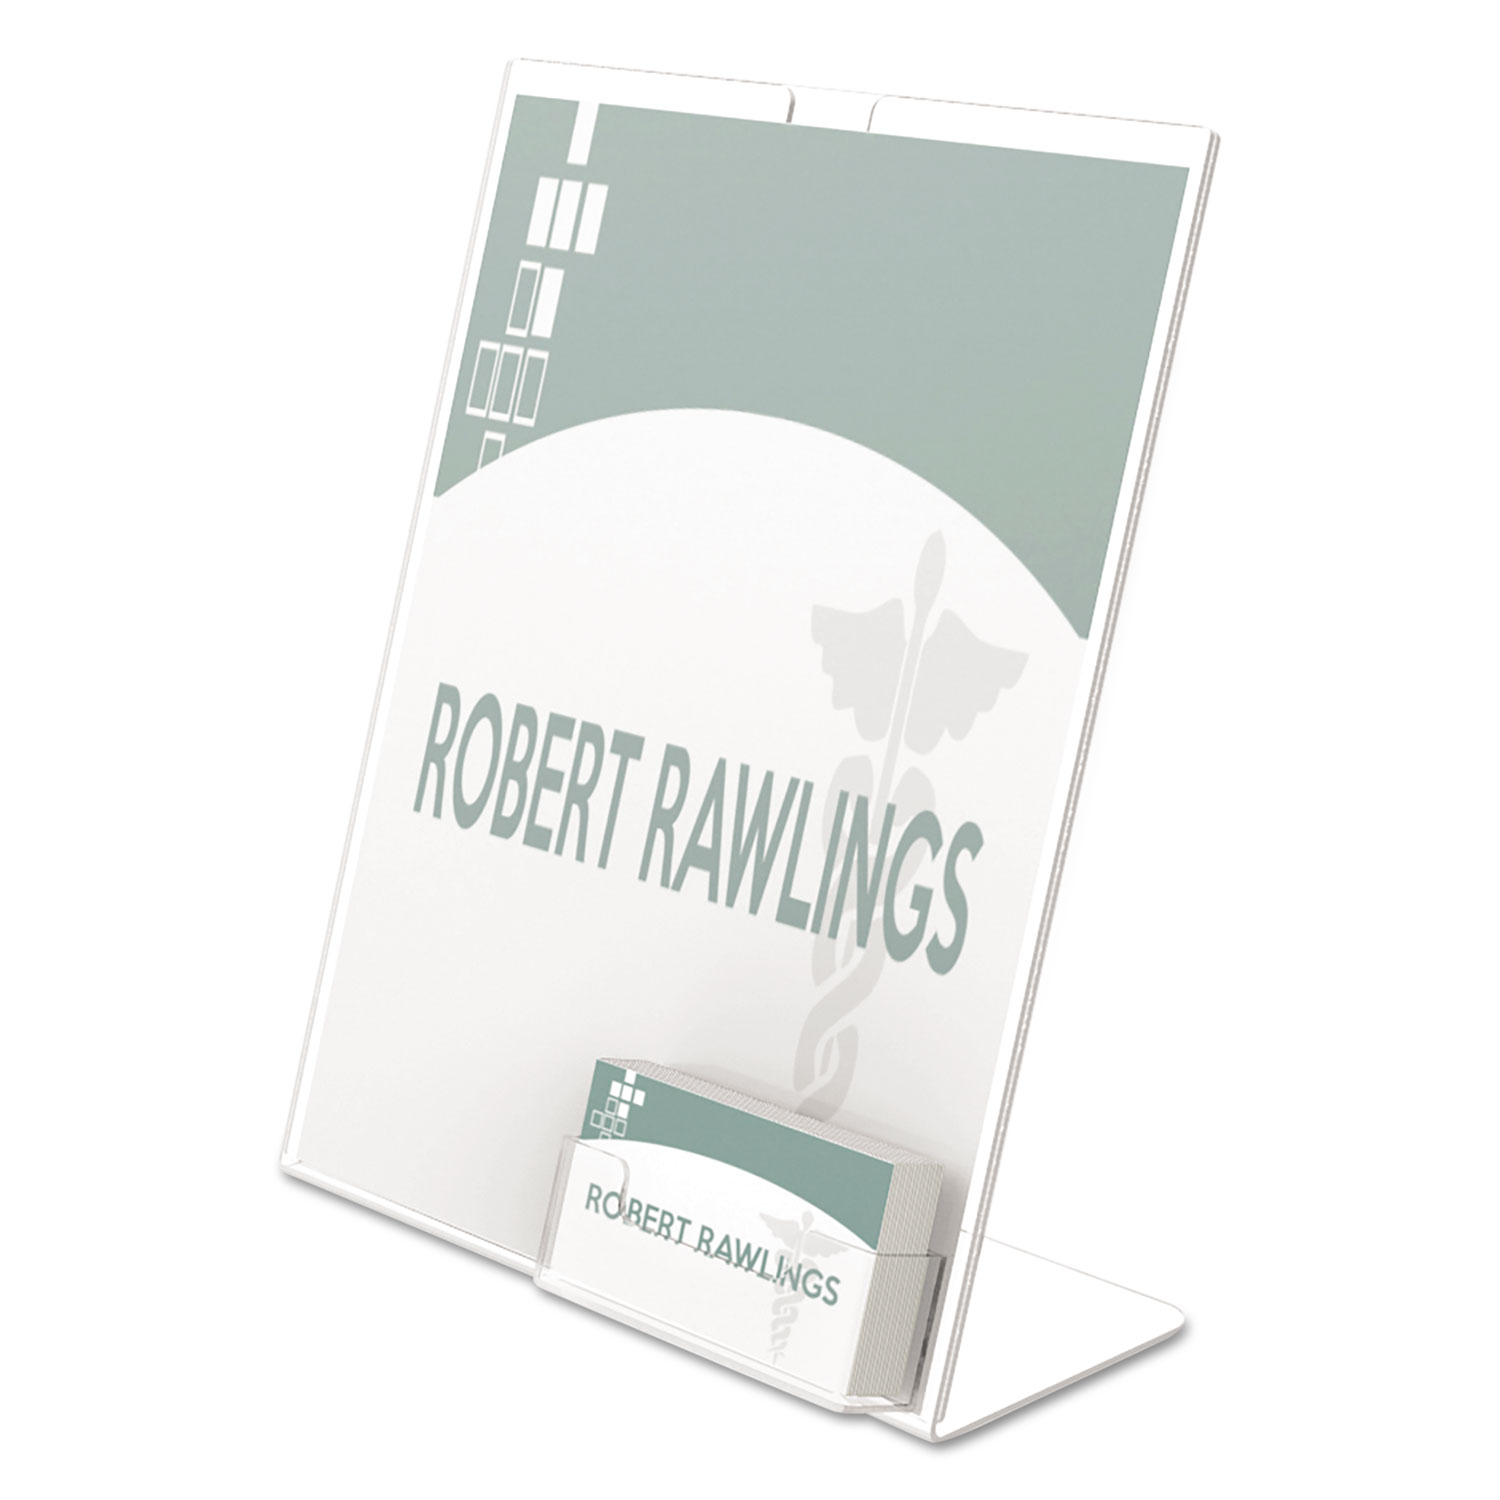 Superior Image Slanted Sign Holder with Business Card Holder, 8.5w x 4.5d x 11h, Clear